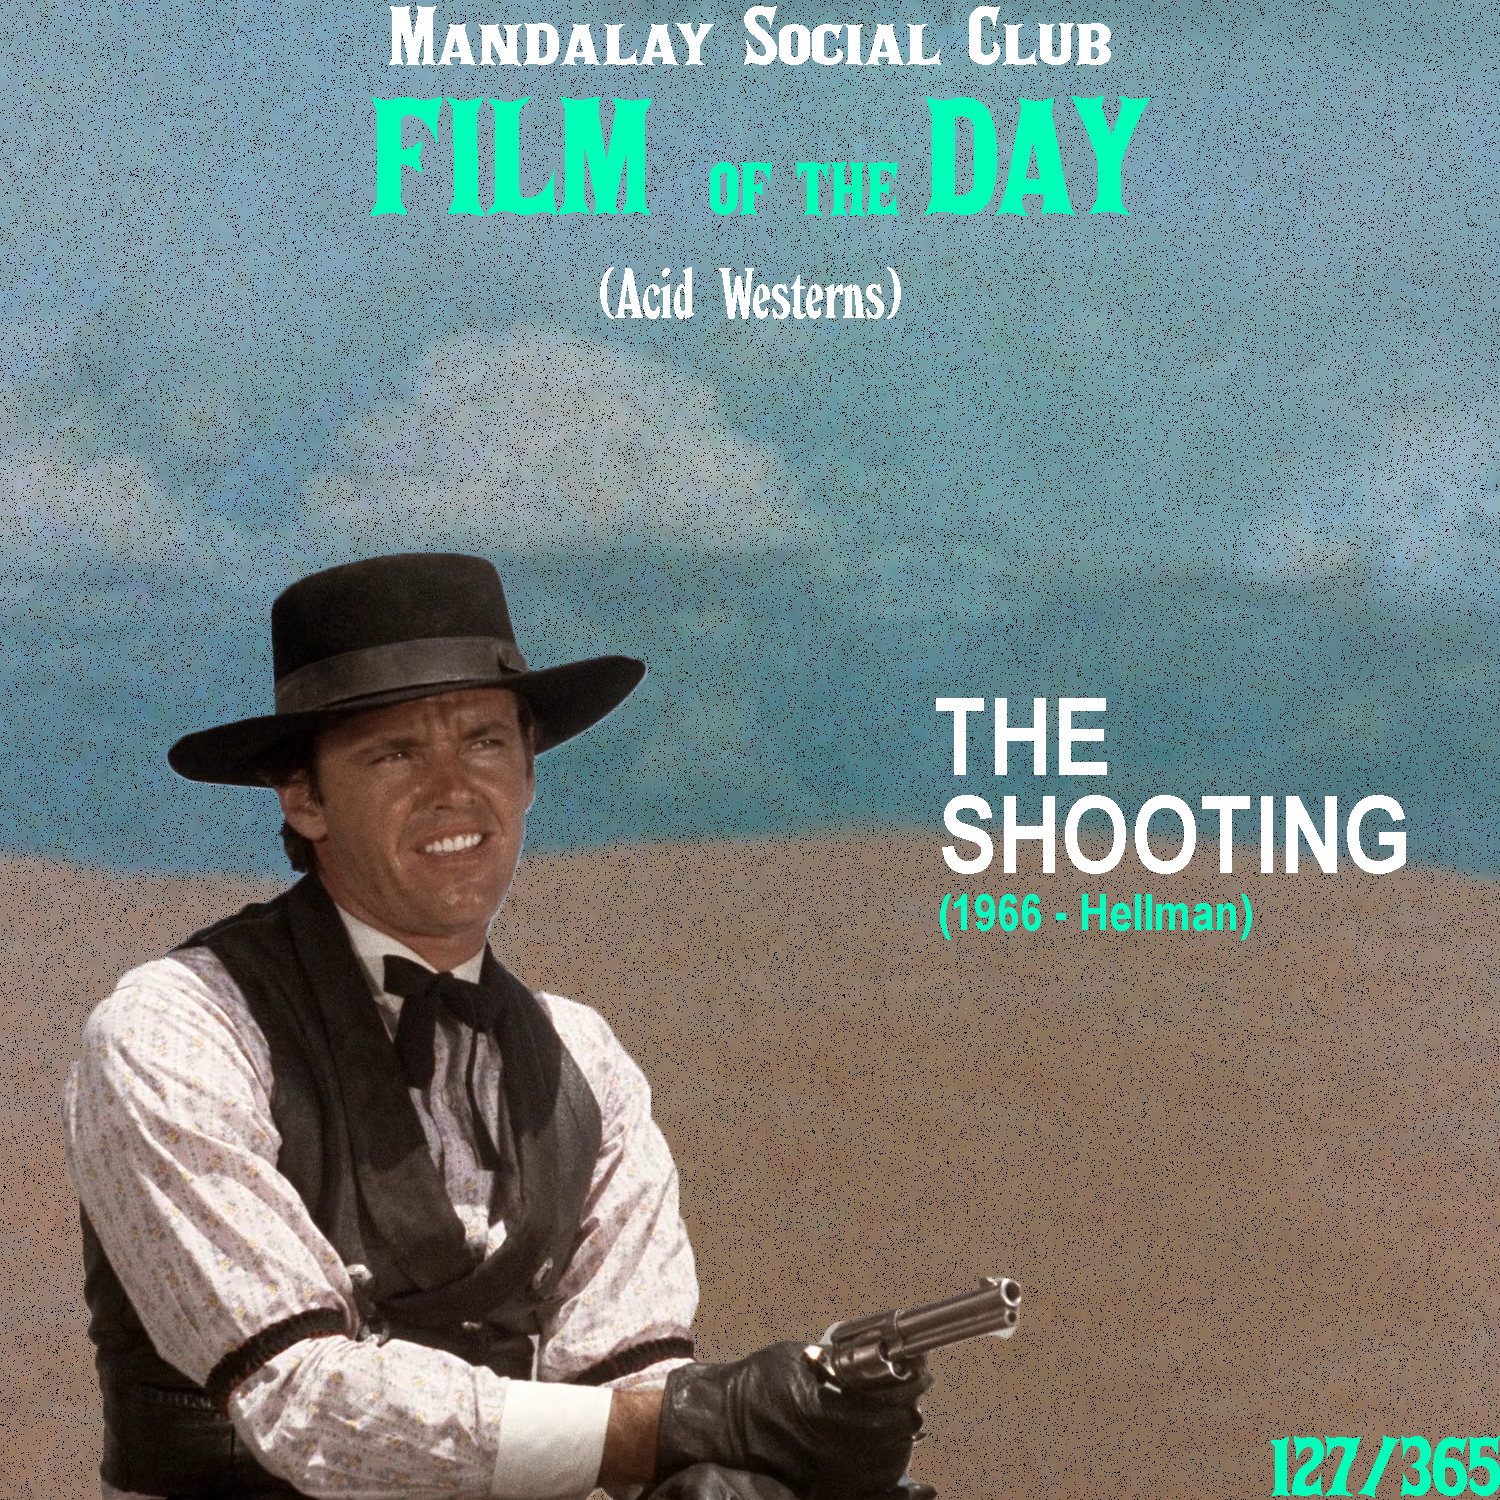 THE SHOOTING     (dir. Monte Hellman)   This film was a project directed by Monte Hellman that was unanimously produced by the great Roger Corman. Hellman and Corman worked on quite a few pictures together, but to me, none of them compare to his 1966 Acid Western  The Shooting .   The Shooting  stars Warren Oates as Willet Gashade, an ex-bounty hunter who, along with his dopey friend Coley, meet a mysterious woman (Millie Perkins) who enters into their camp without any warning. She needs their help crossing the desert and she pays them handsomely, however she refuses to tell them why she's going where she's going. Along the way, the group encounters Billy, played by a young Jack Nicholson, who's been tailing them the whole time. Turns out that he and the mysterious woman have something in cahoots, but Willet can't figure out for the life of him what it is.   The Shooting  is now looked back on as one of the first Acid Westerns of all time. As opposed to the traditional Western where the world was portrayed through the lens of the western frontier,  The Shooting  strips all the home-comfort of the Western genre and uses the barren atmosphere to create a haunting sense of existential anxiety and paranoia-induced dread. Death is always just over their shoulder and with the introduction of Nicholson's character, death is quite literally over their shoulder.    5/5     WATCH: The Criterion Channel